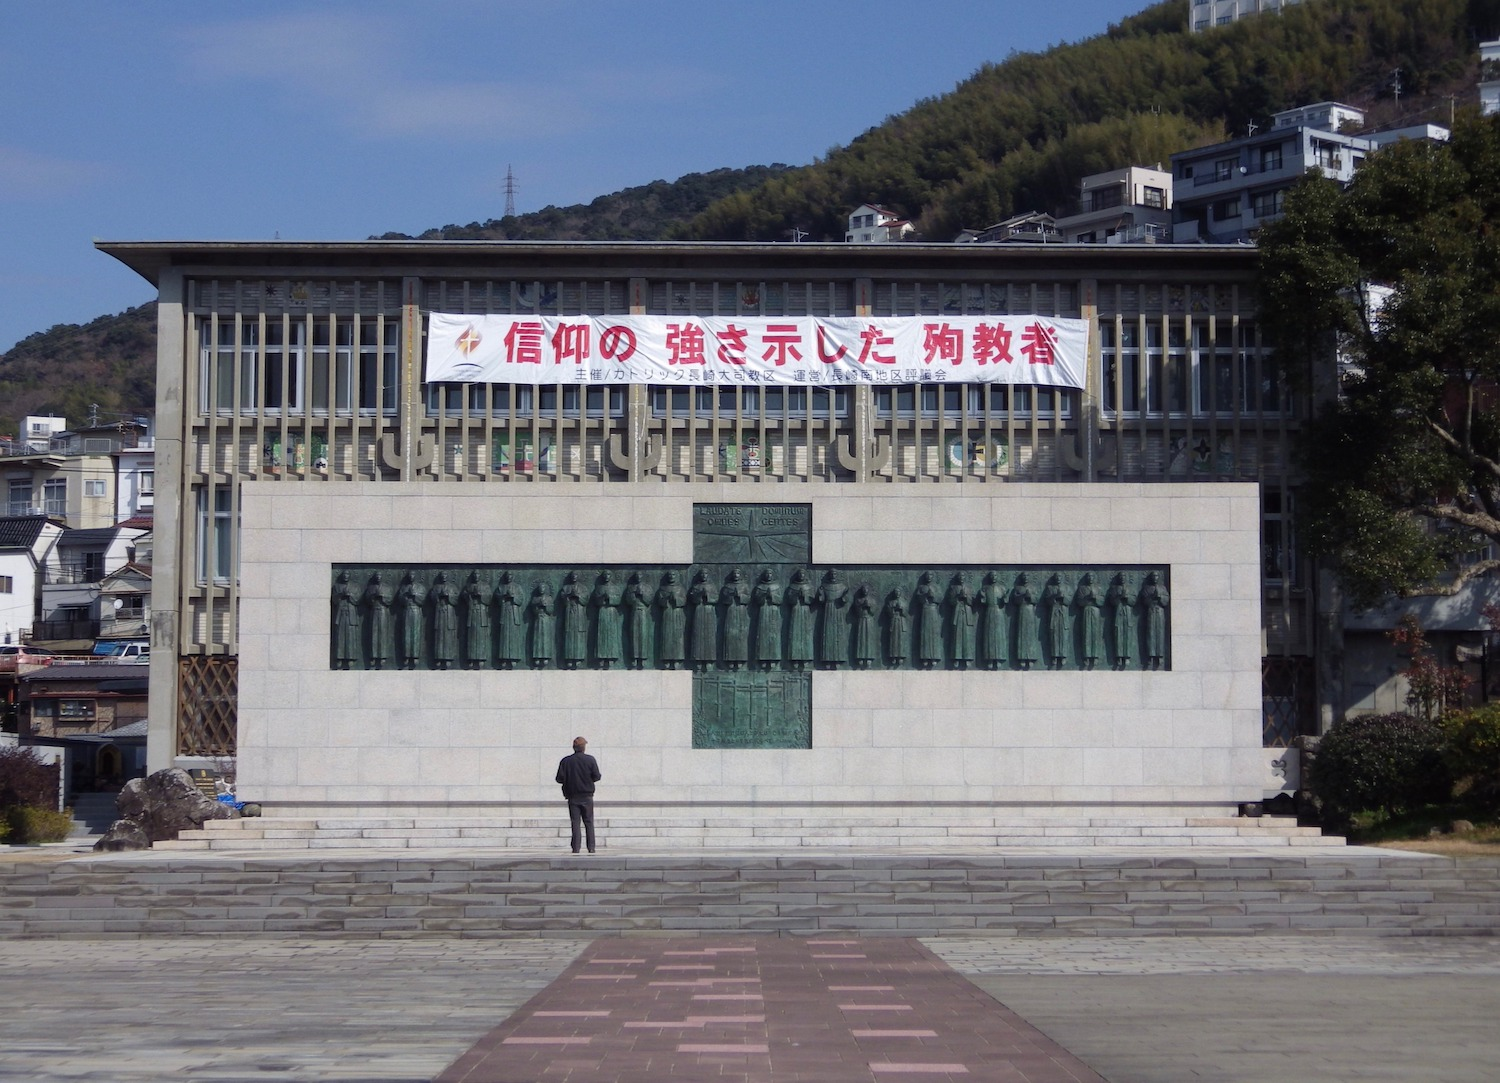 Behind the monument, there is a museum that houses artifacts.